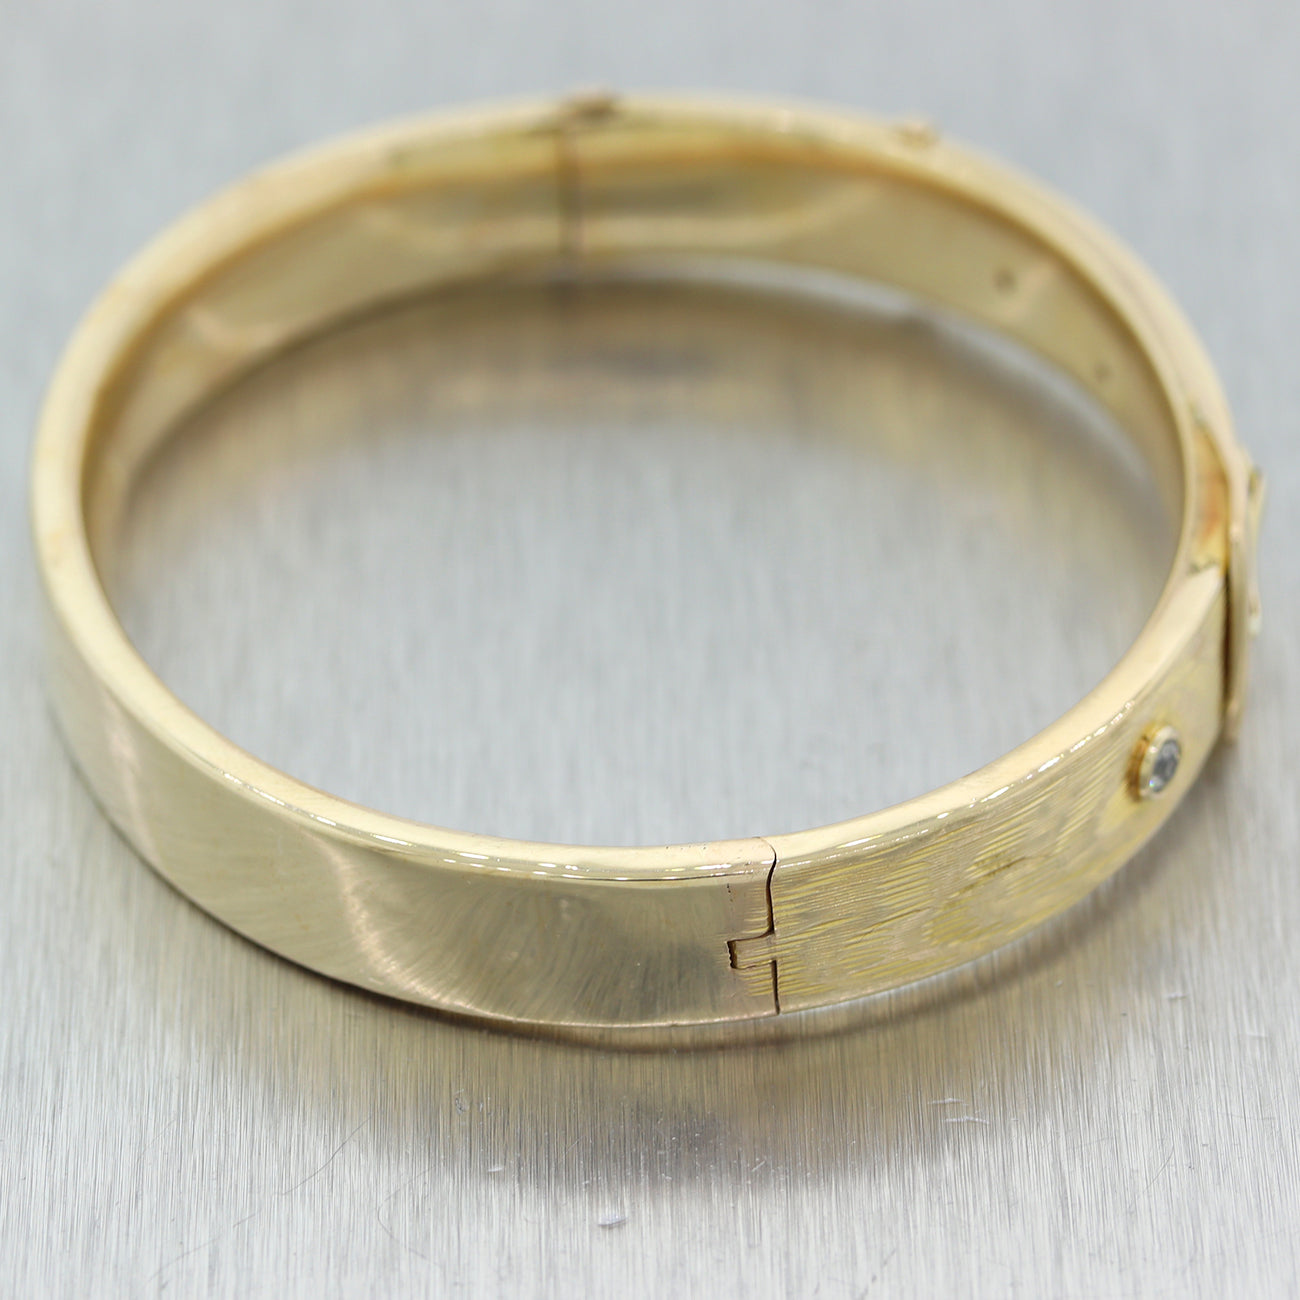 1880's Antique Victorian 14k Yellow Gold 0.25ctw Diamond Buckle Bangle Bracelet